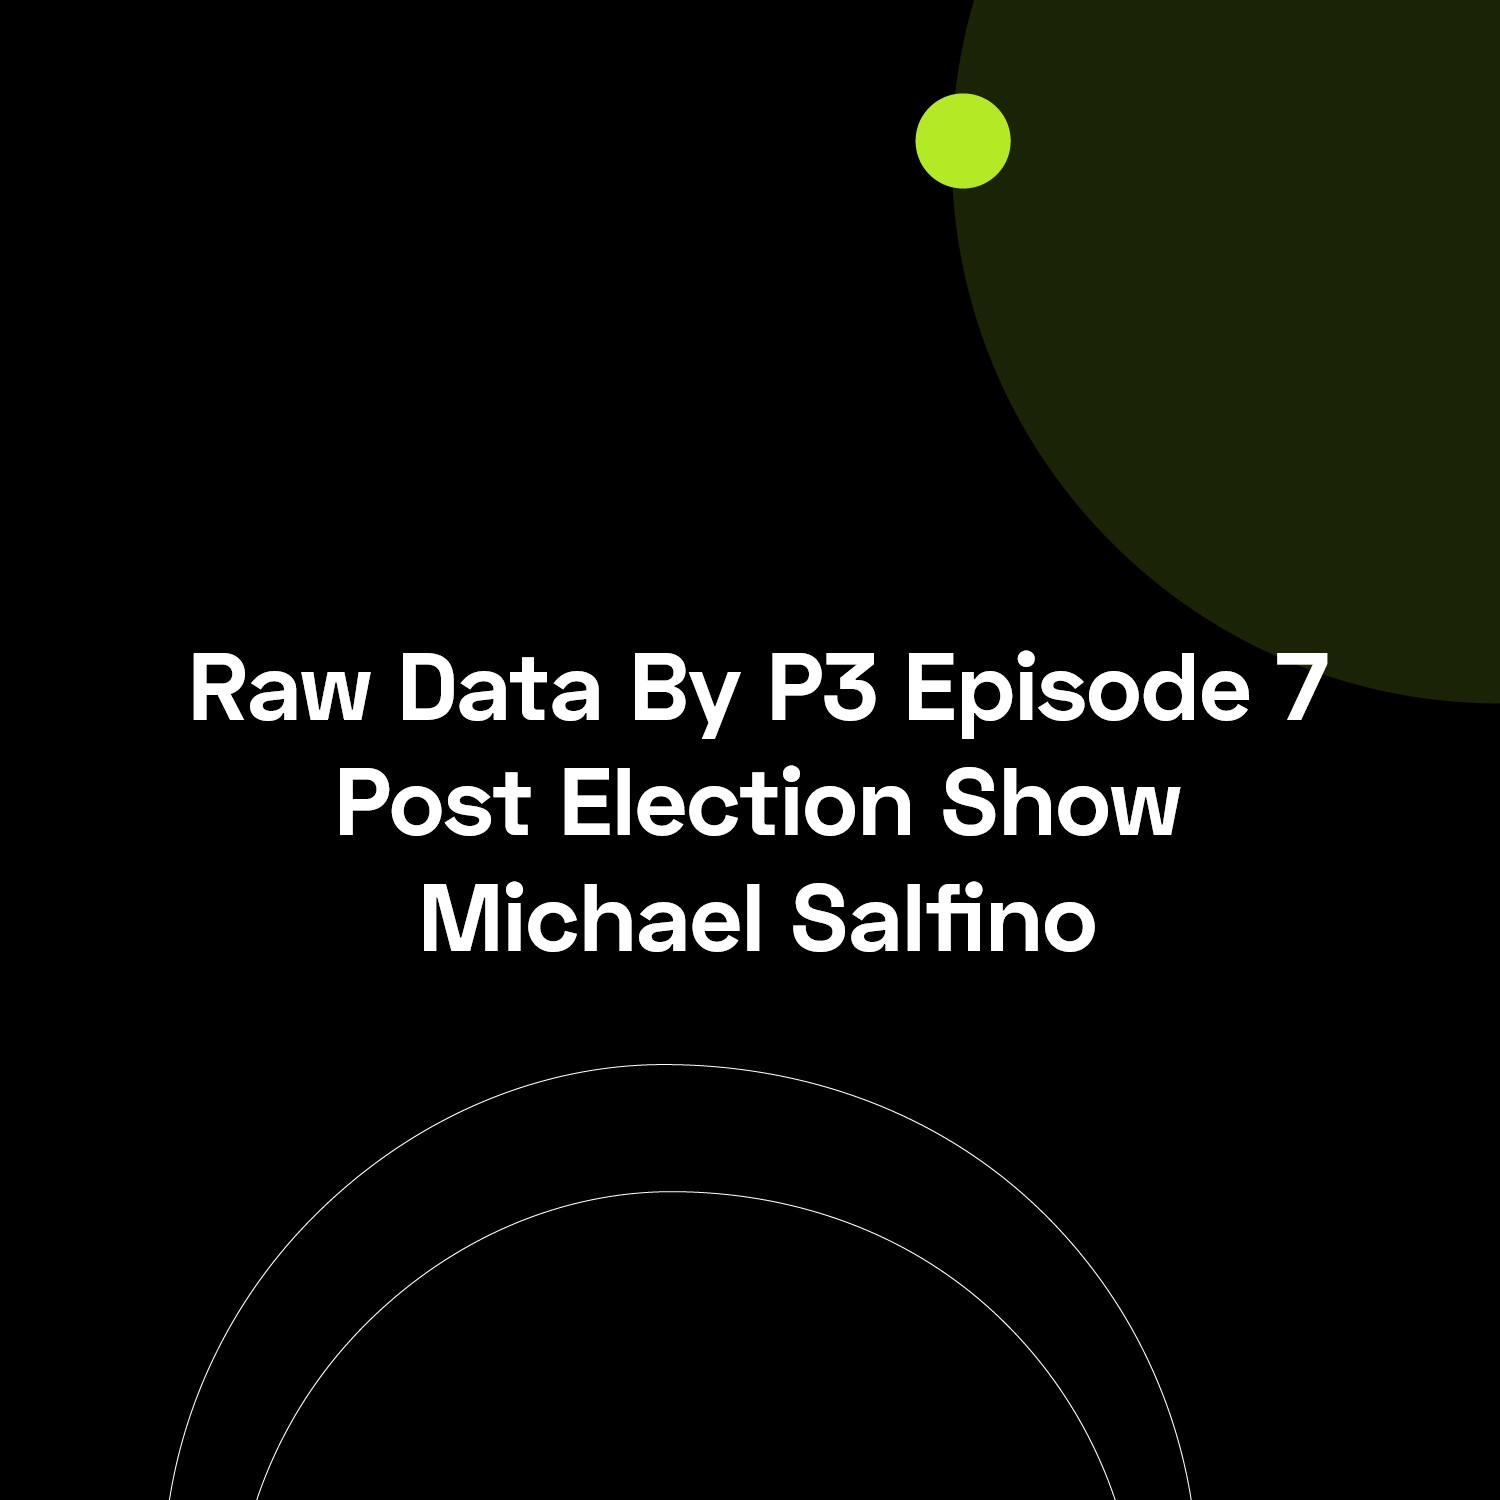 Raw Data By P3